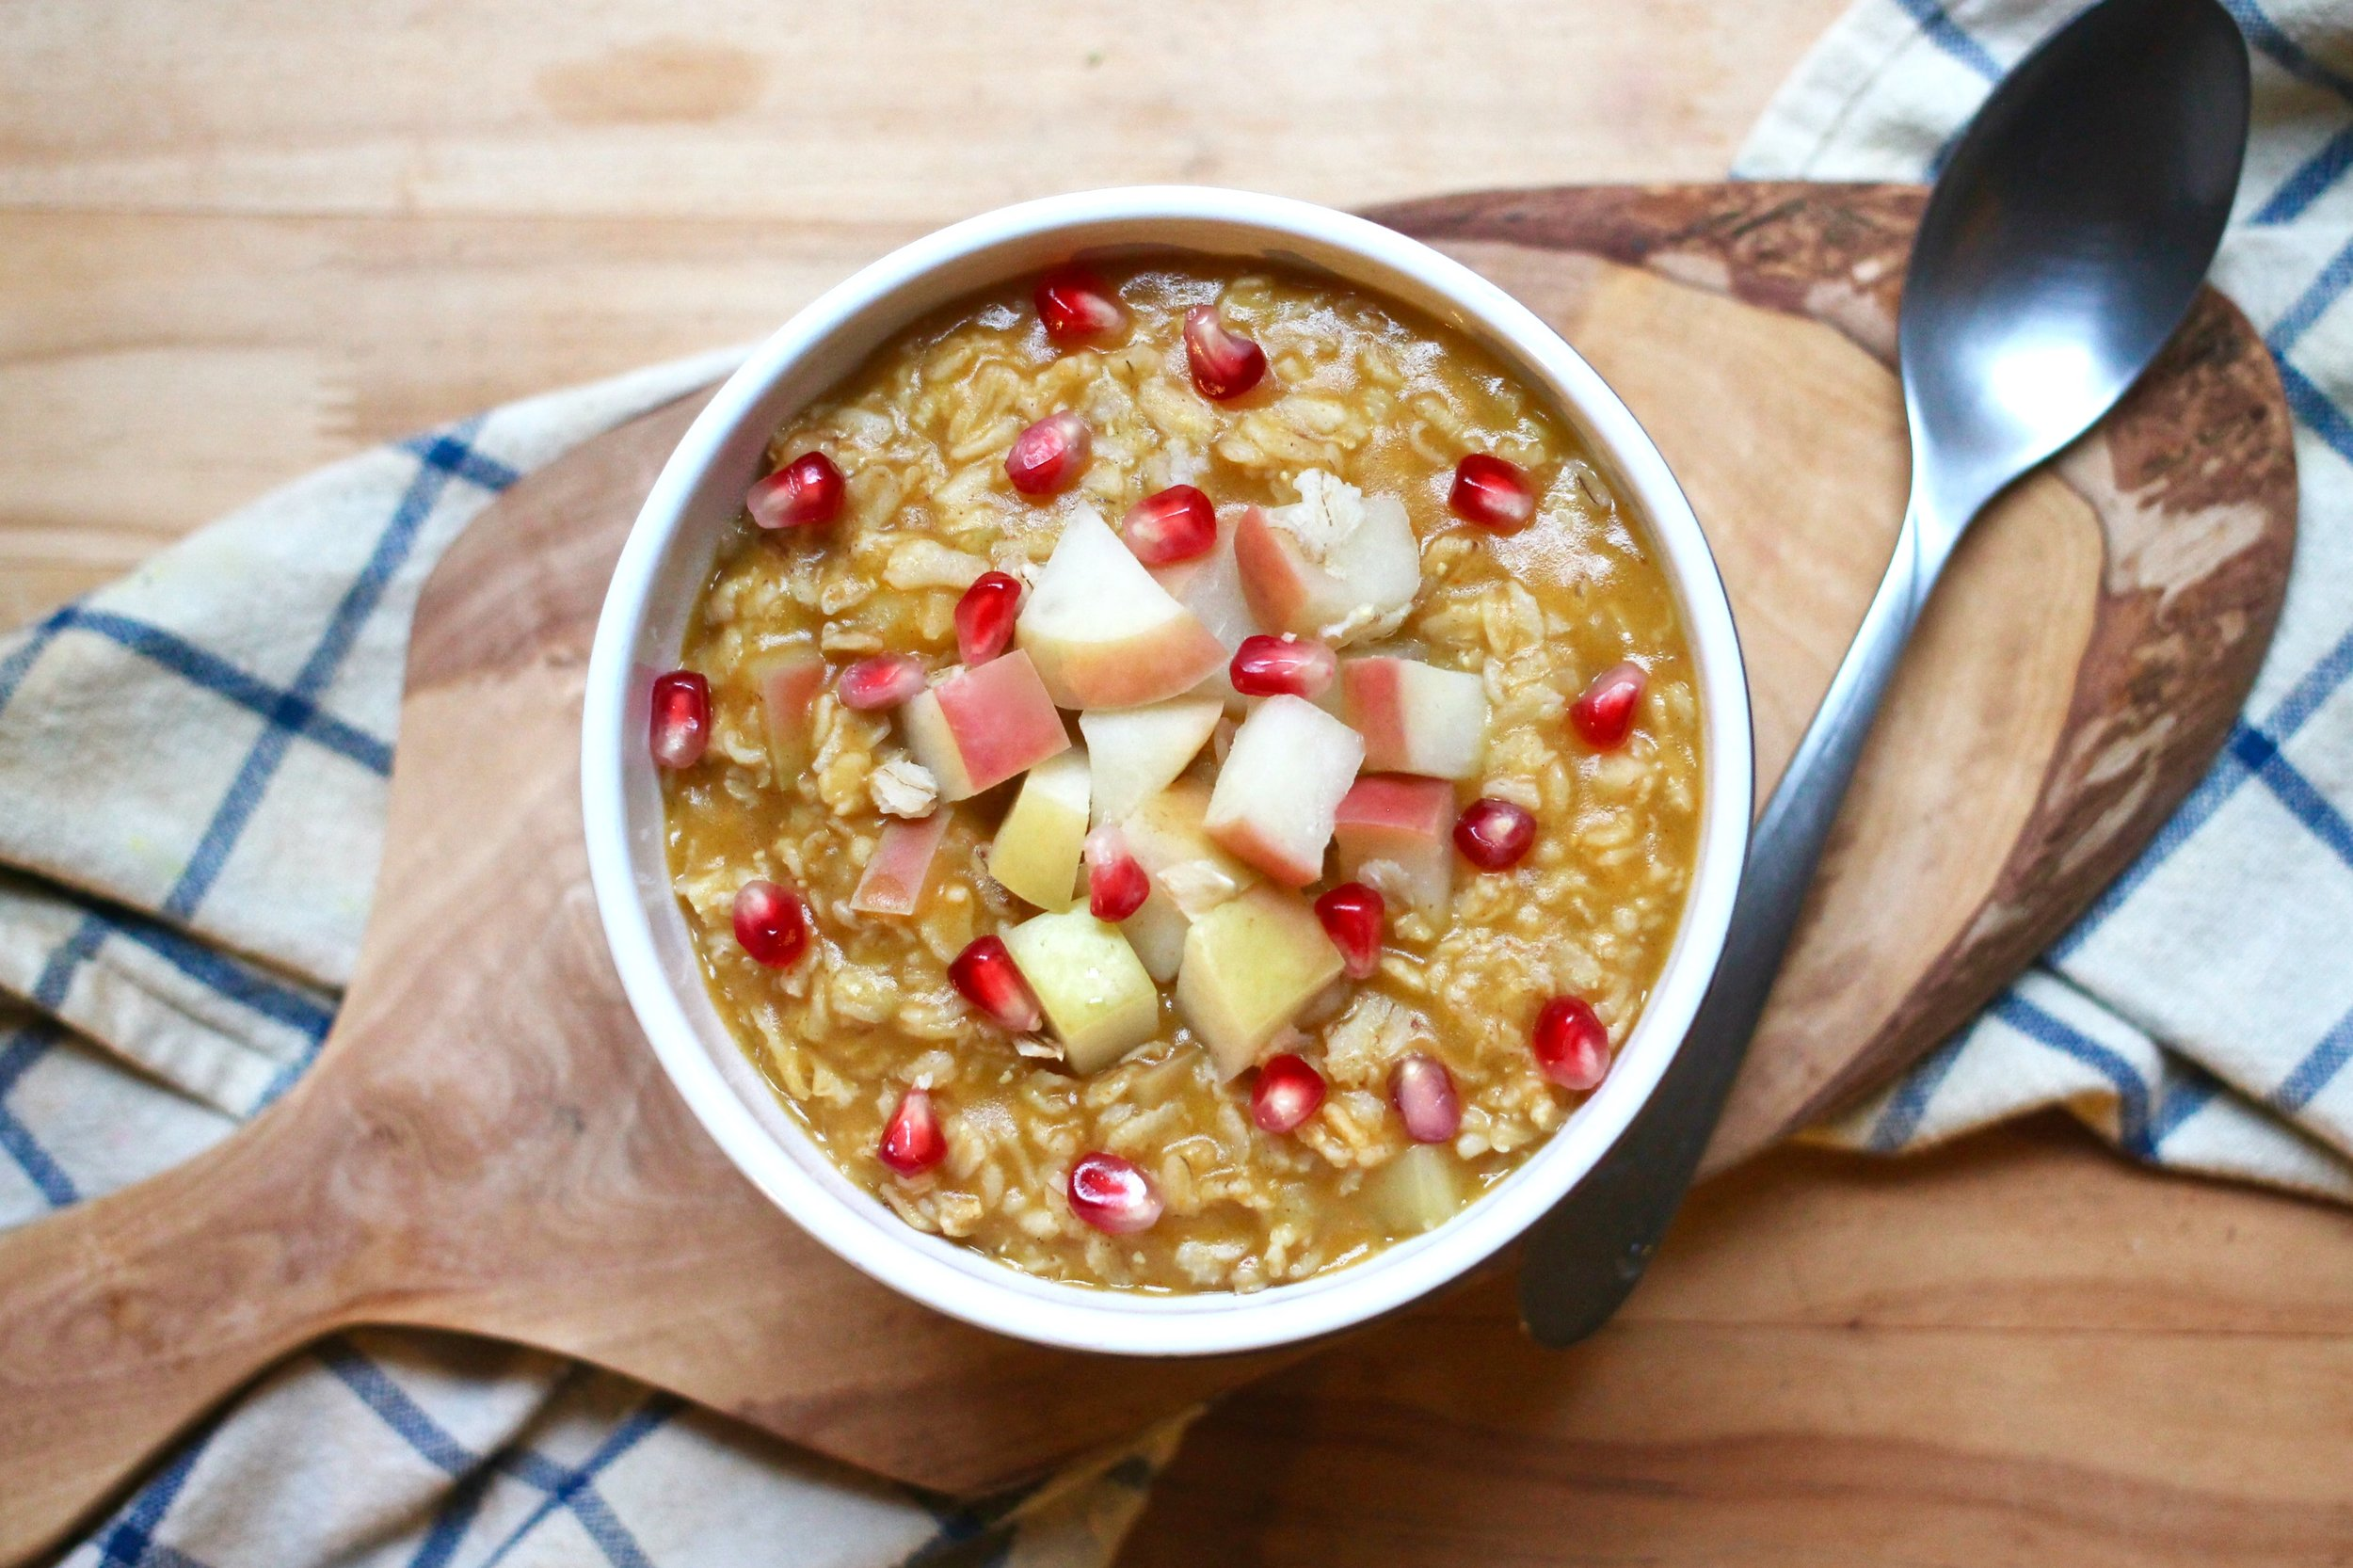 Apple Pumpkin Oatmeal, in all of its glory! This is the perfect breakfast for a brisk autumn morning.